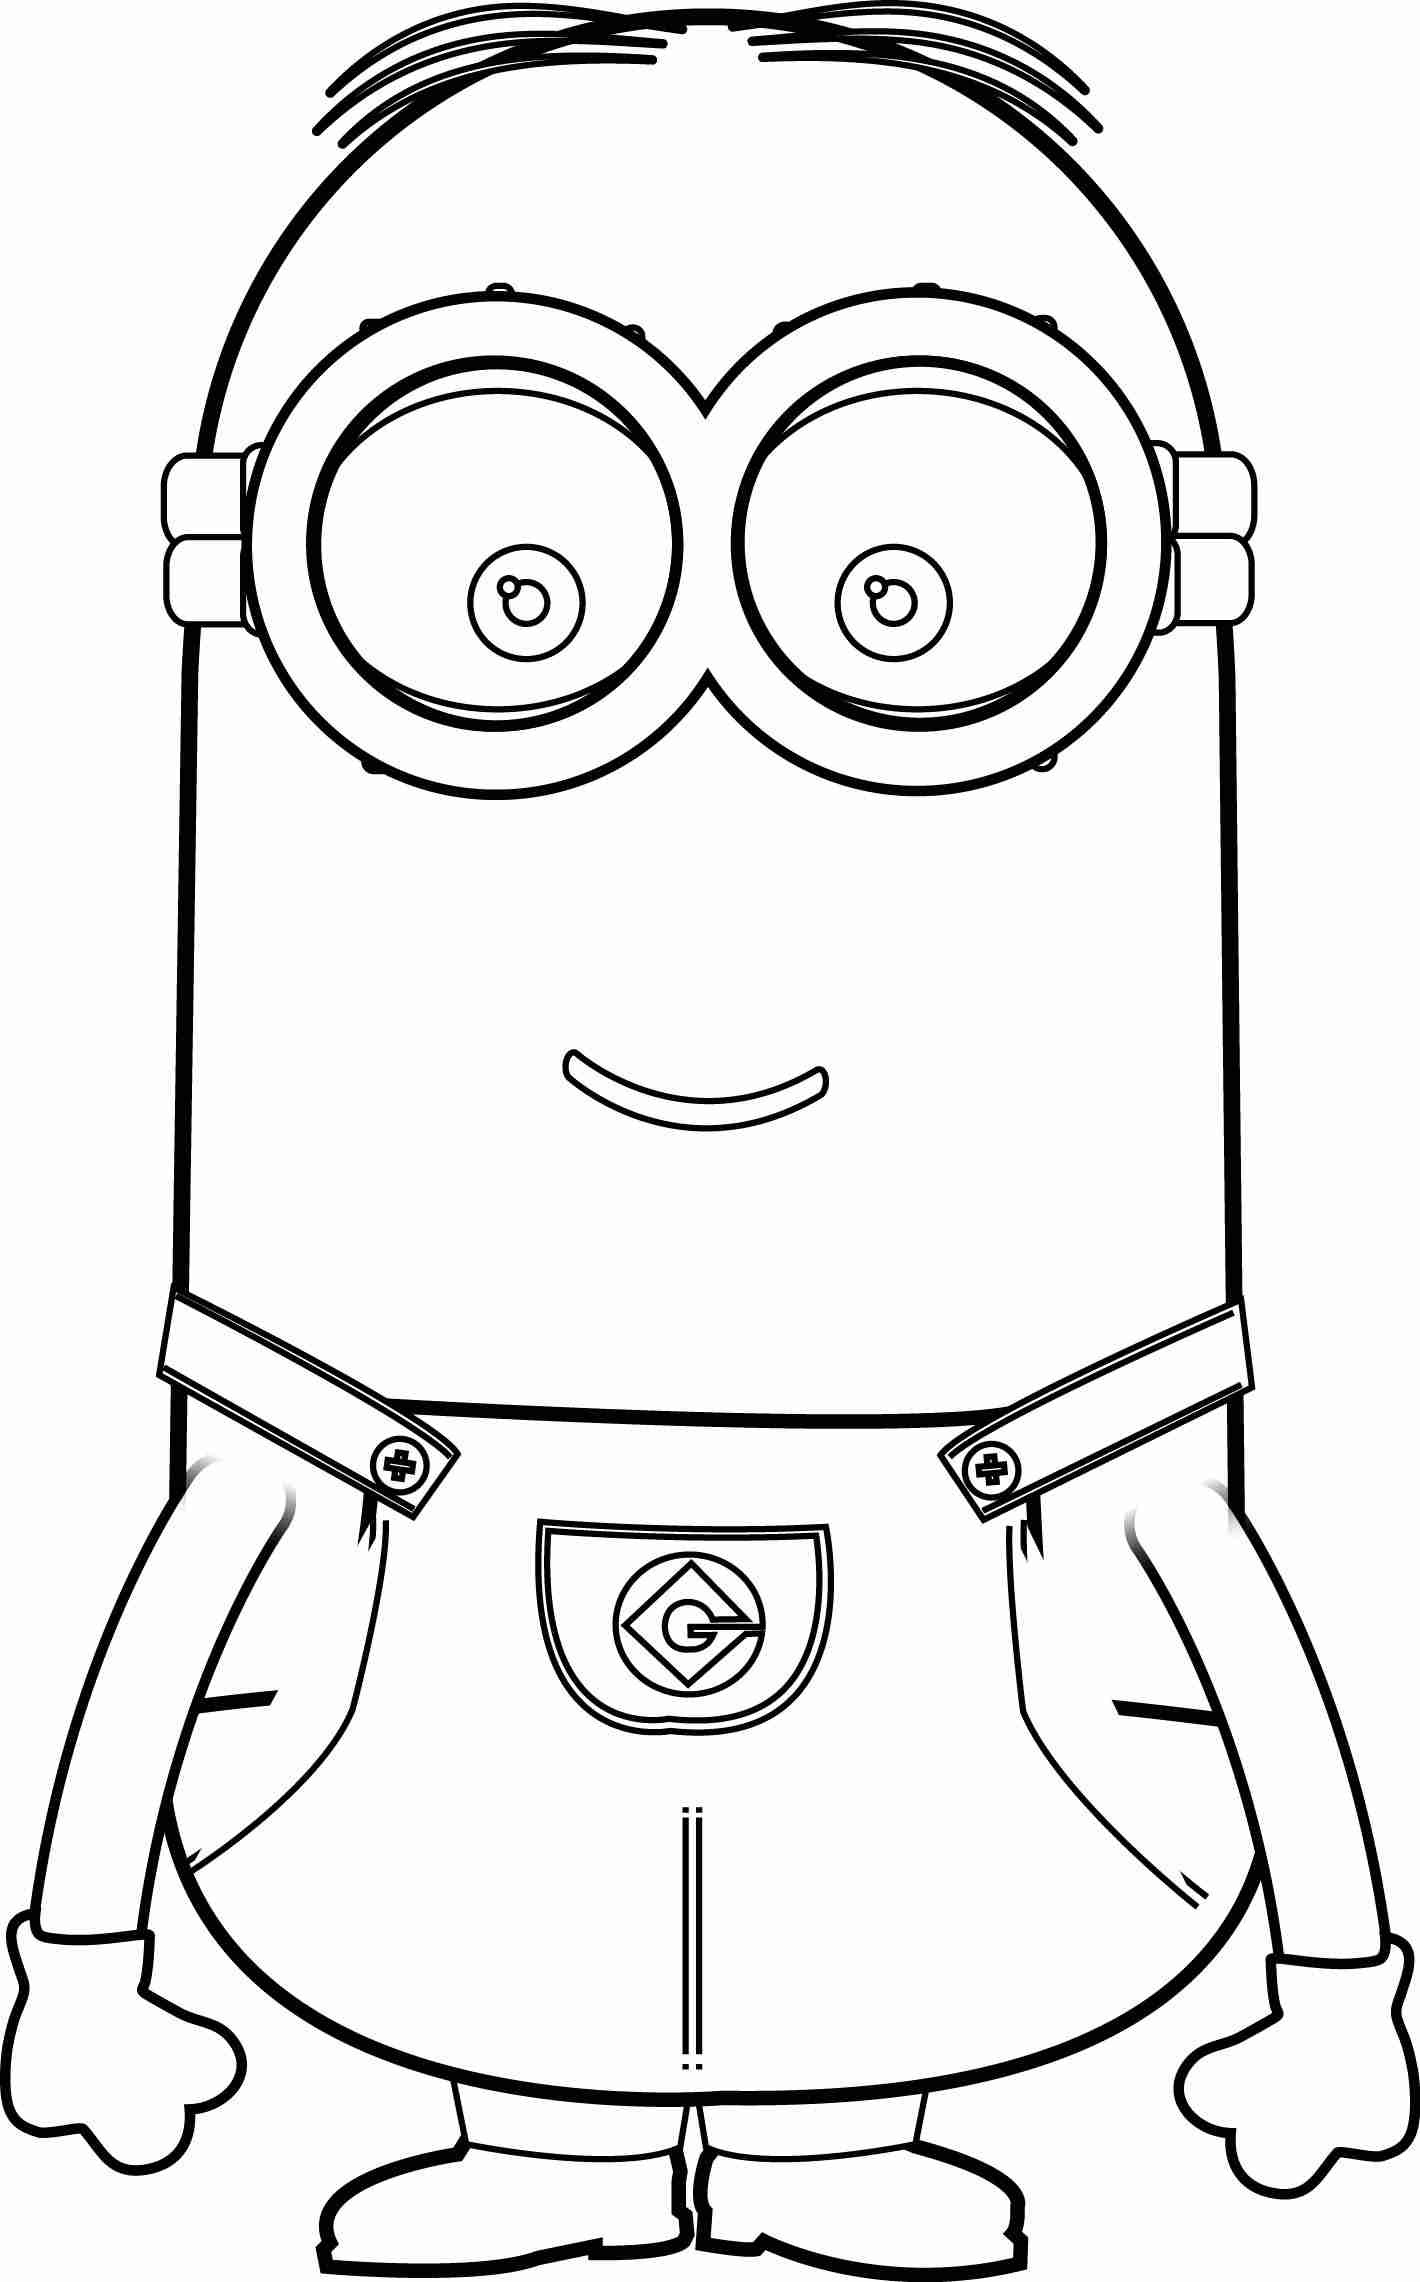 minion coloring book minion drawing for kids at paintingvalleycom explore coloring book minion